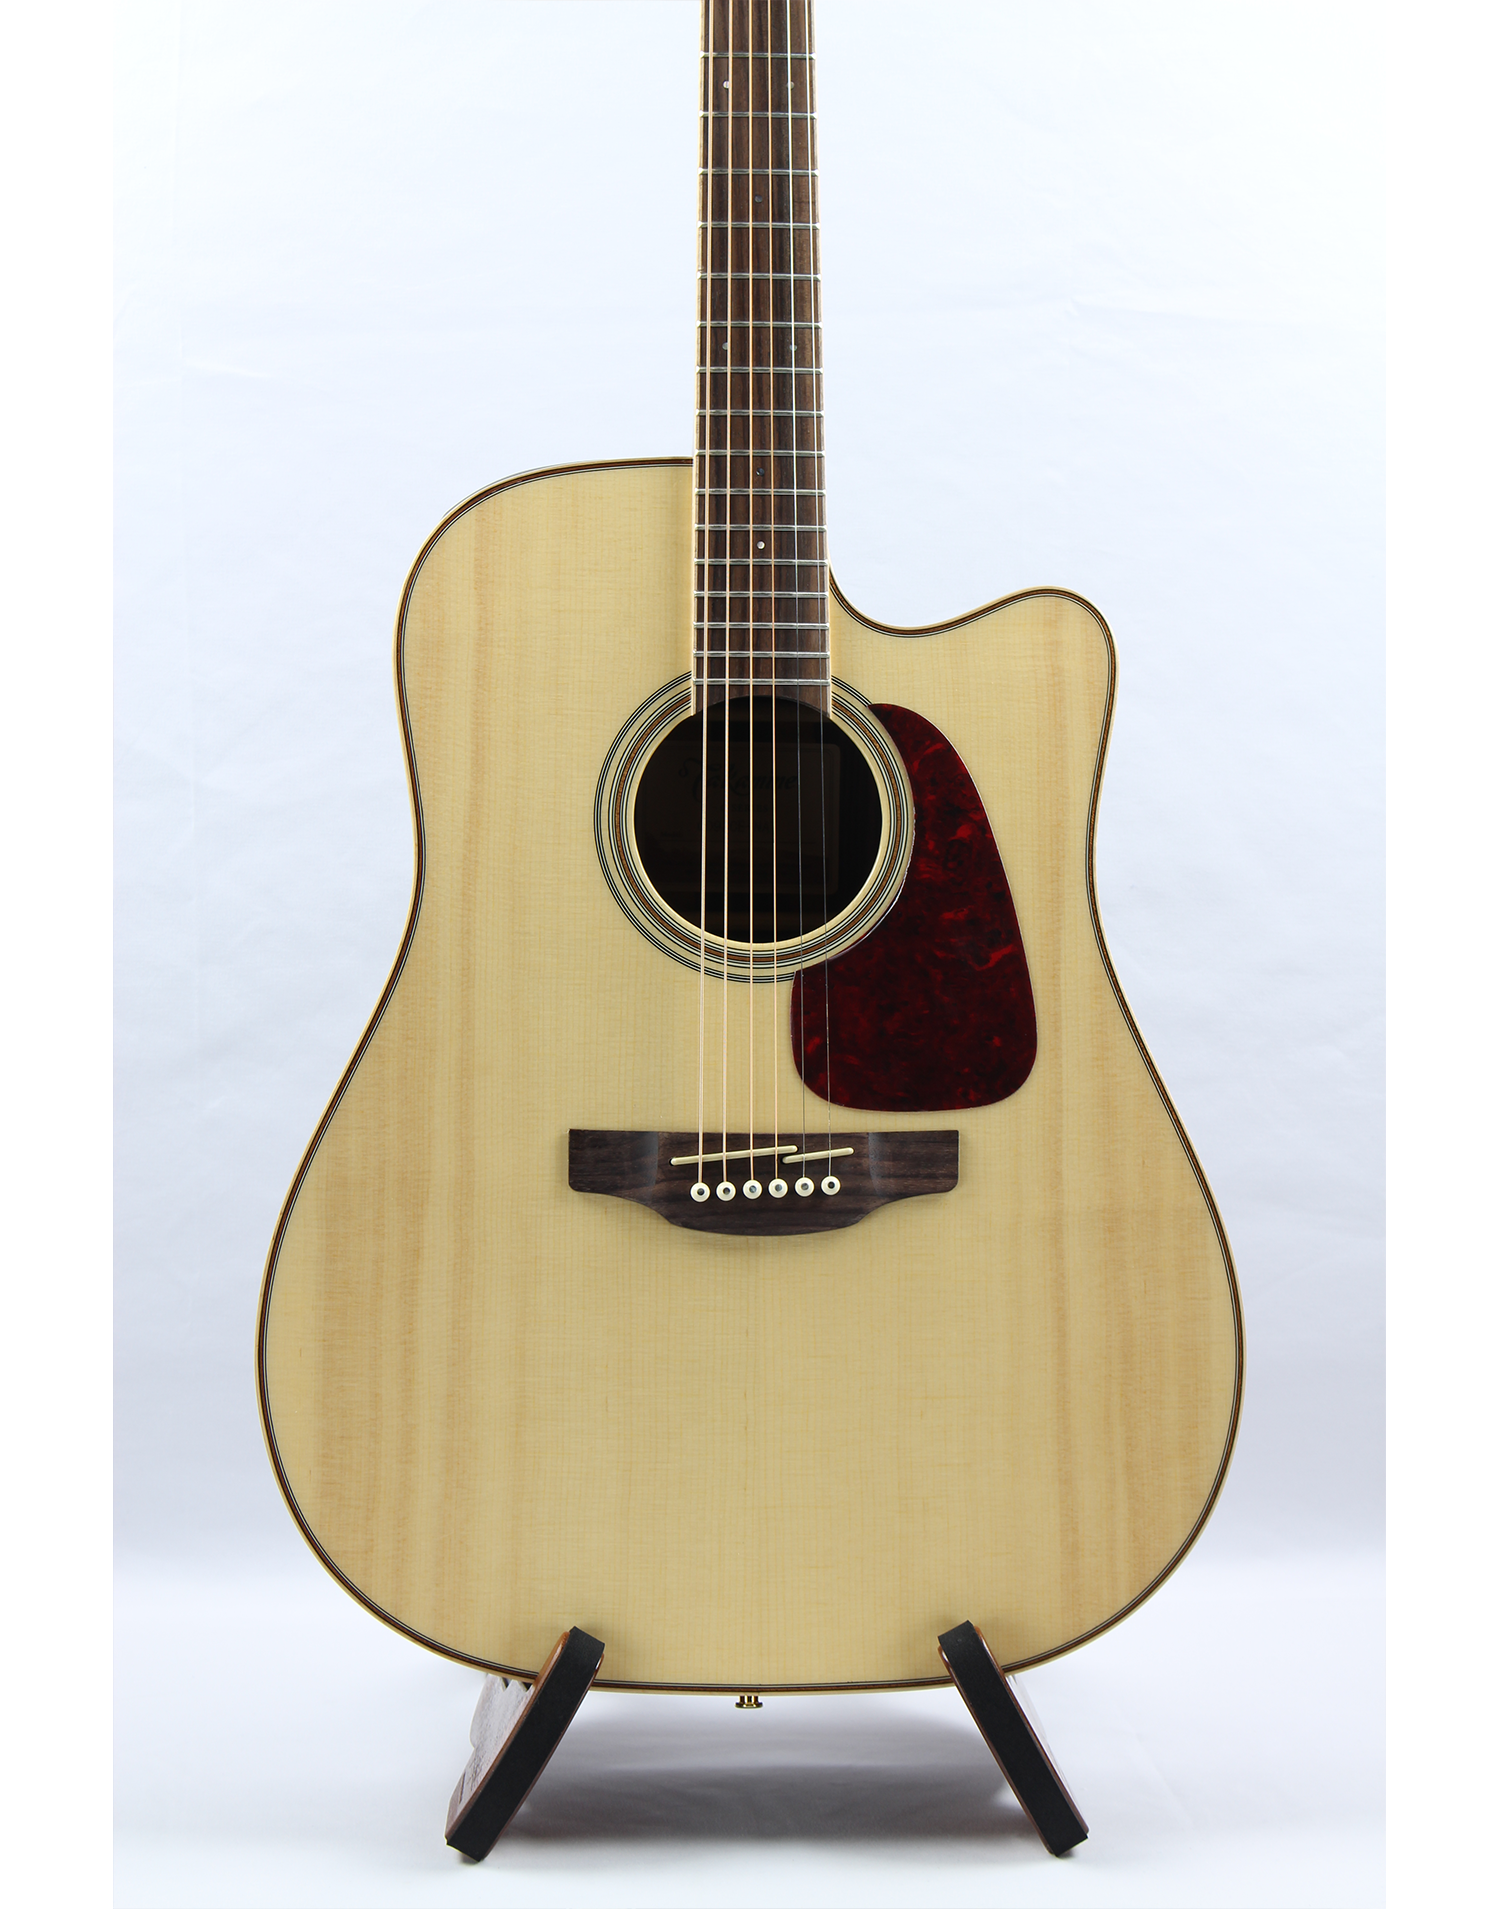 takamine 39 s gd93ce acoustic electric guitar at jerry lee 39 s music store. Black Bedroom Furniture Sets. Home Design Ideas